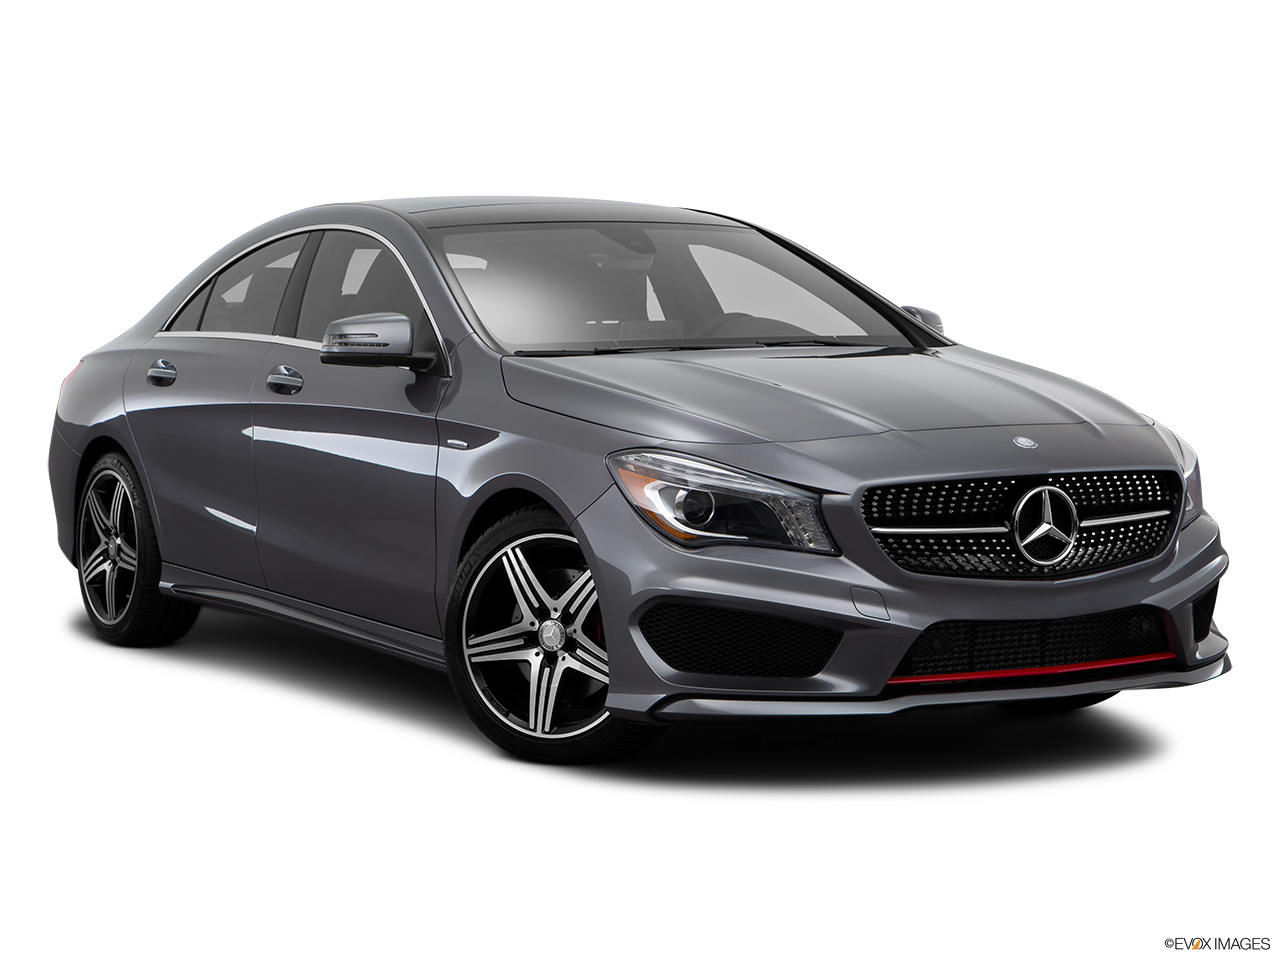 Car pictures list for mercedes benz cla class 2016 cla 250 for Mercedes benz bahrain